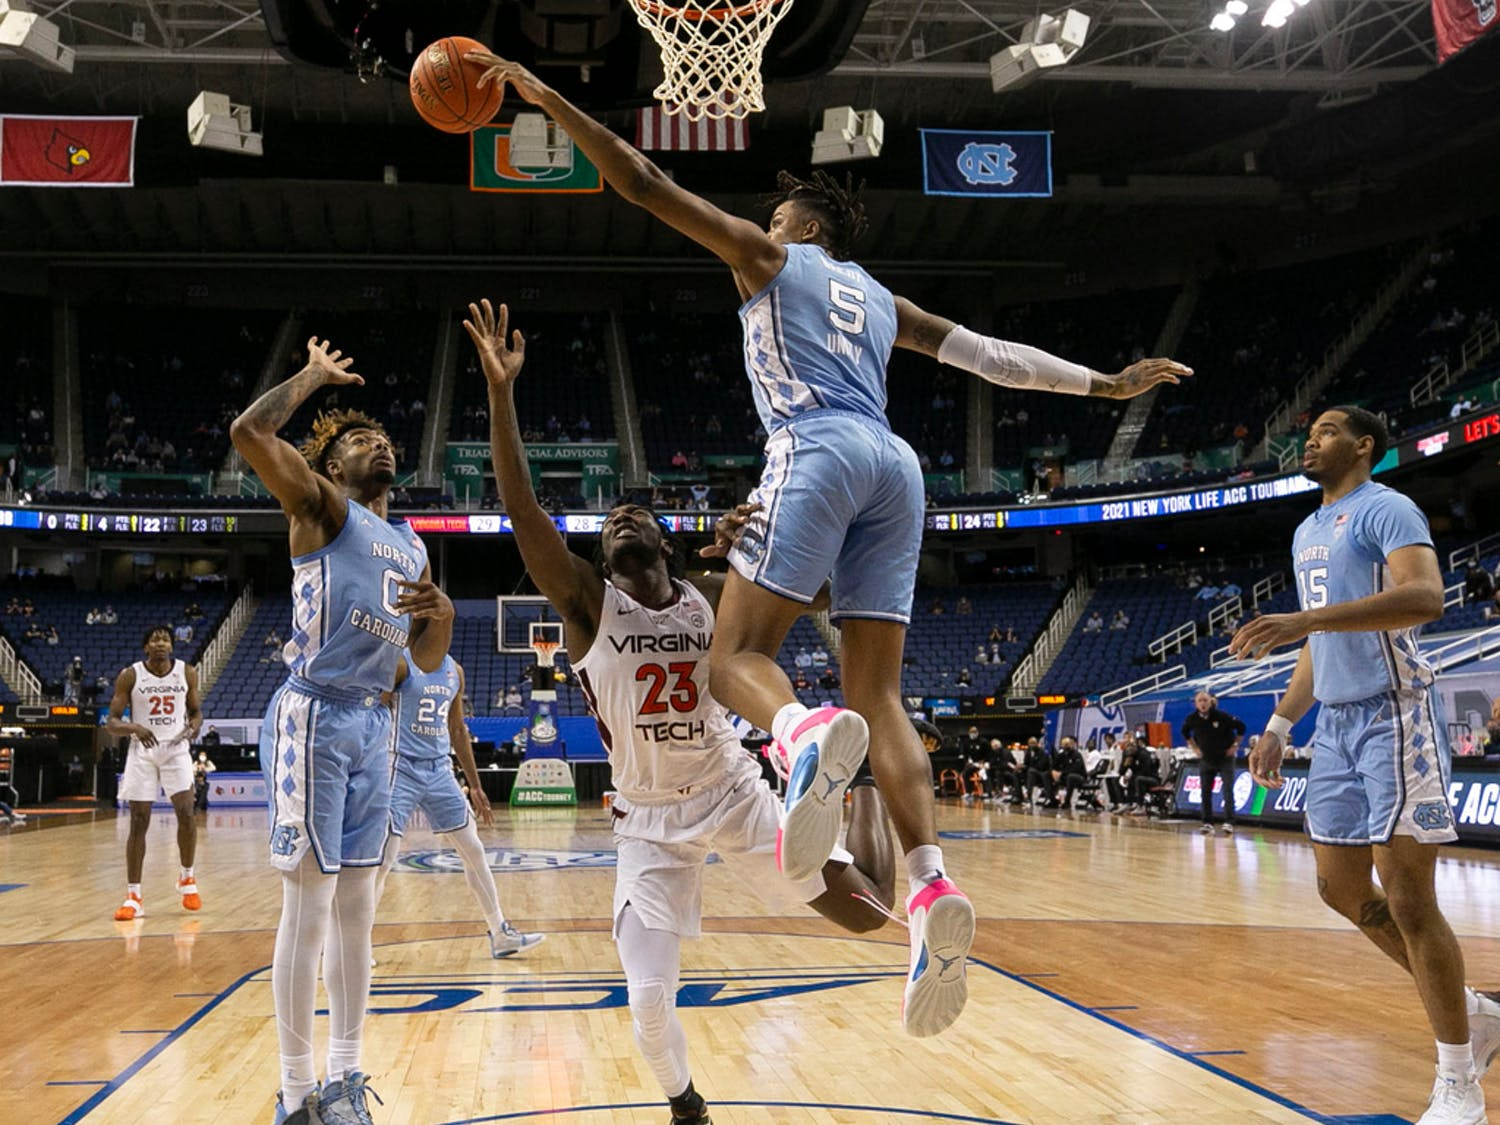 UNC sophomore forward/center Armando Bacot takes the ball in the ACC Tournament Quarterfinals against Virginia Tech on Thursday, March 11, 2021 in the Greensboro Coliseum. The Tar Heels beat the Hokies 81-73. Photo courtesy of Robert Willett/The News & Observer.